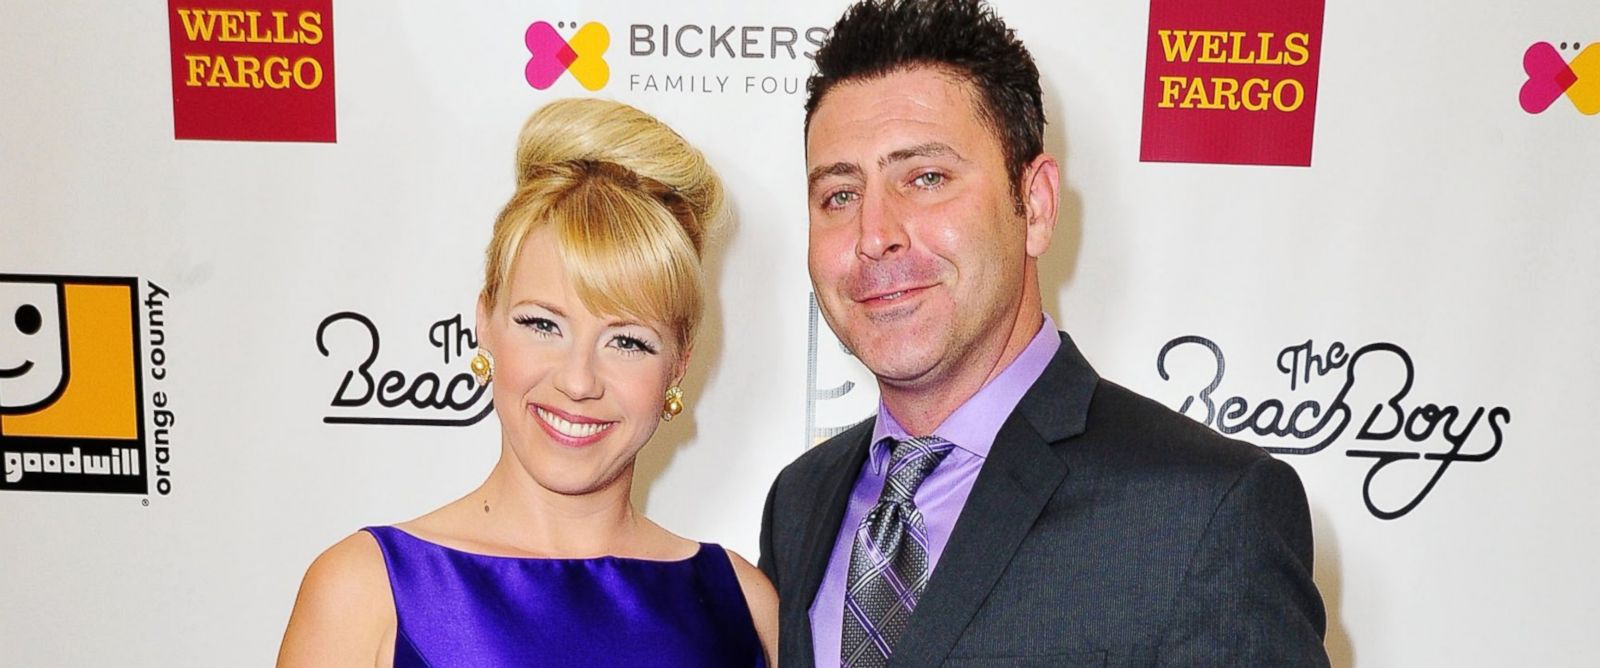 PHOTO: Jodie Sweetin and Justin Hodak attend the 2nd Annual Goodwill Gala at Laguna Cliffs Marriott on Nov. 7, 2015 in Dana Point, Calif.